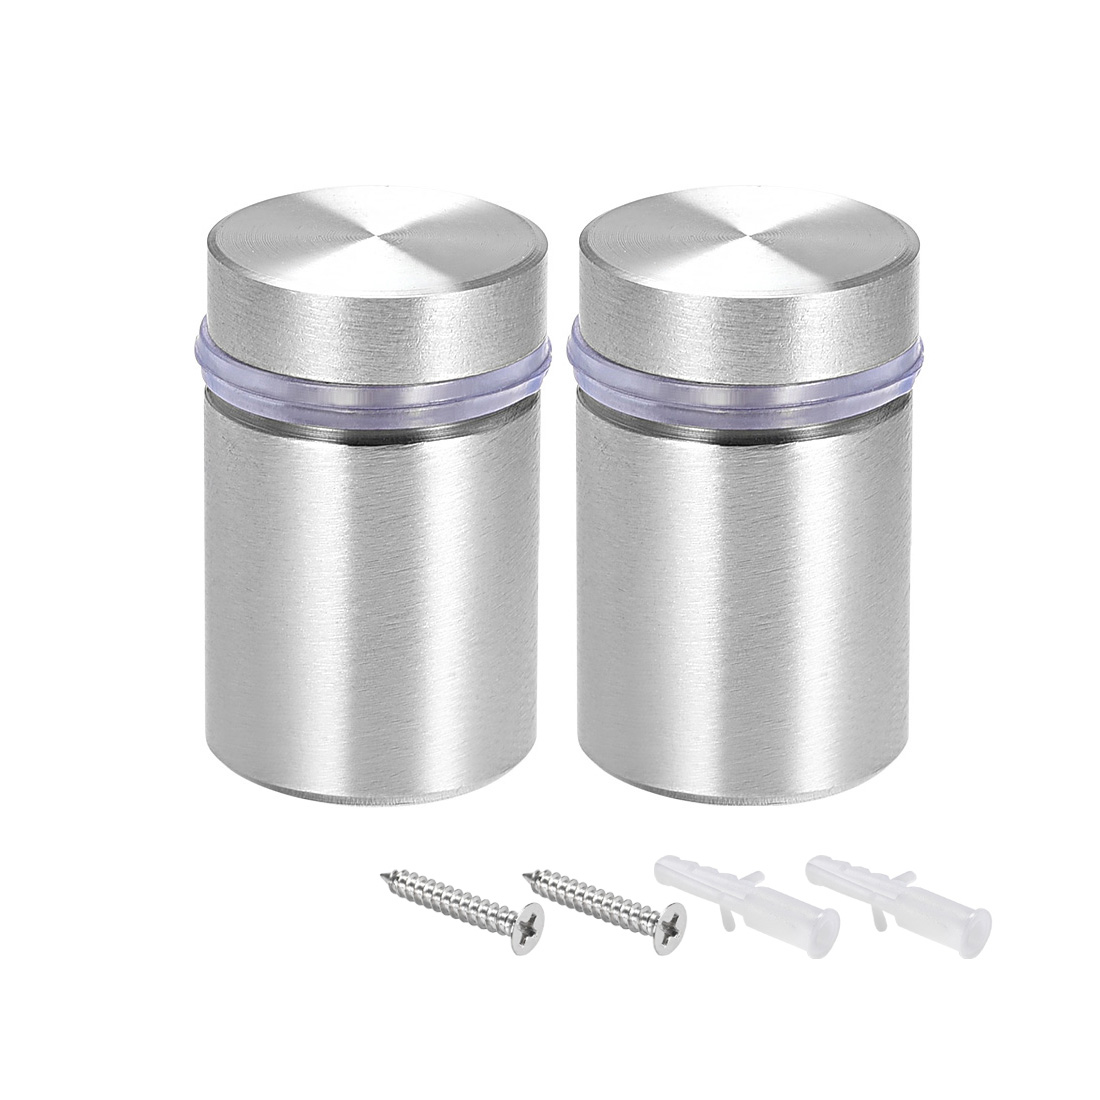 Glass Standoff Mount Solid Stainless Steel Wall Standoff Holder 18mmx28mm 2 Pcs